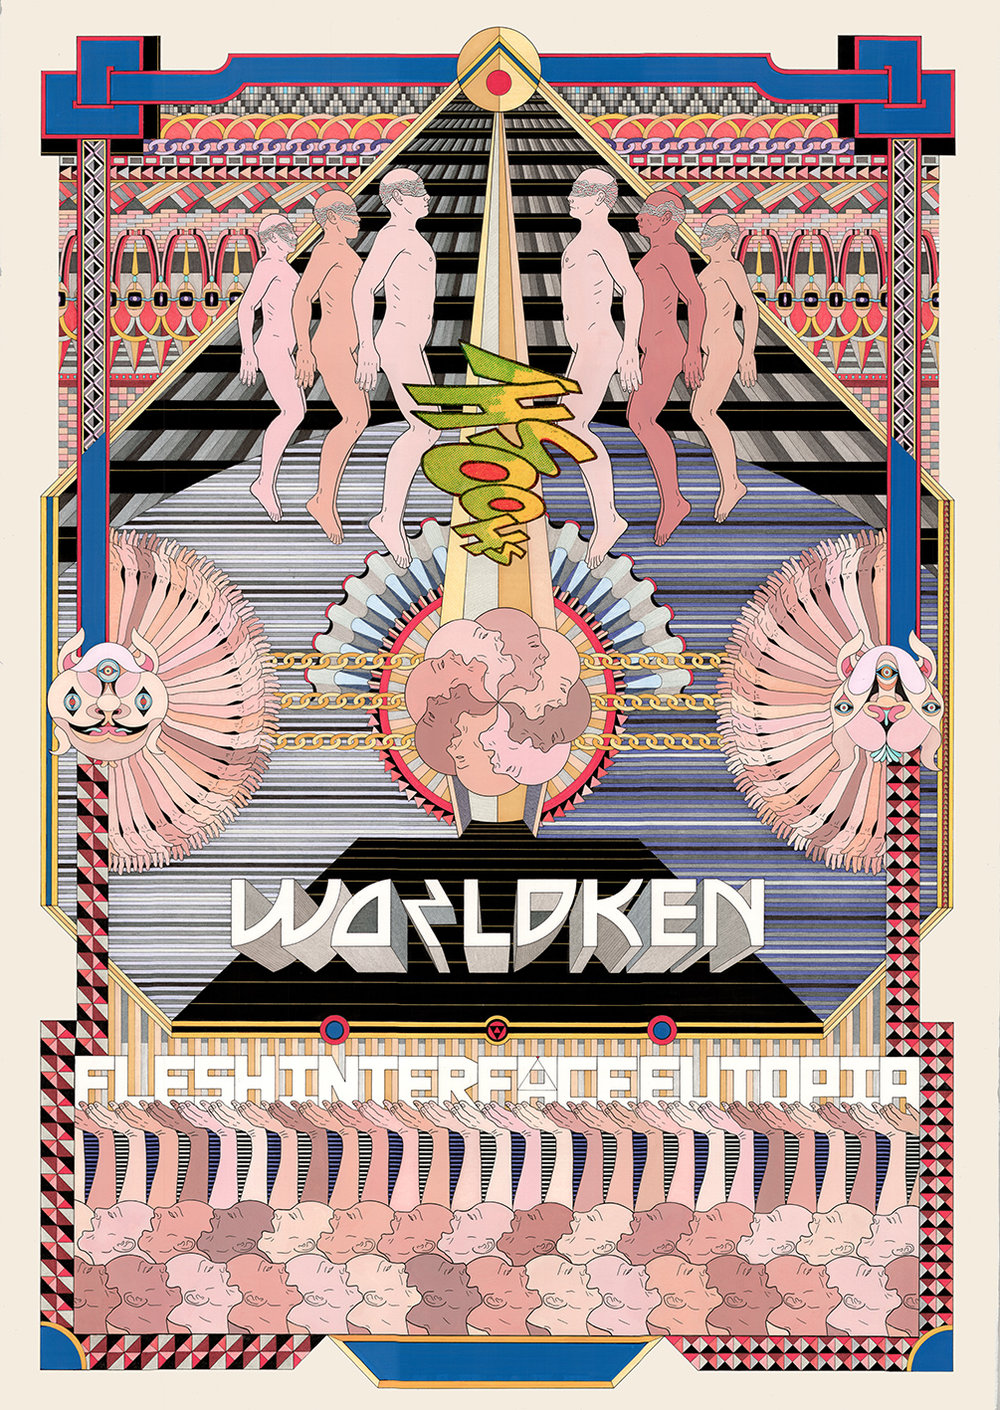 Worldken, 2017 Acrylic paint, pen, fibre tipped markers and gouache on paper  101 x 73.5 cm